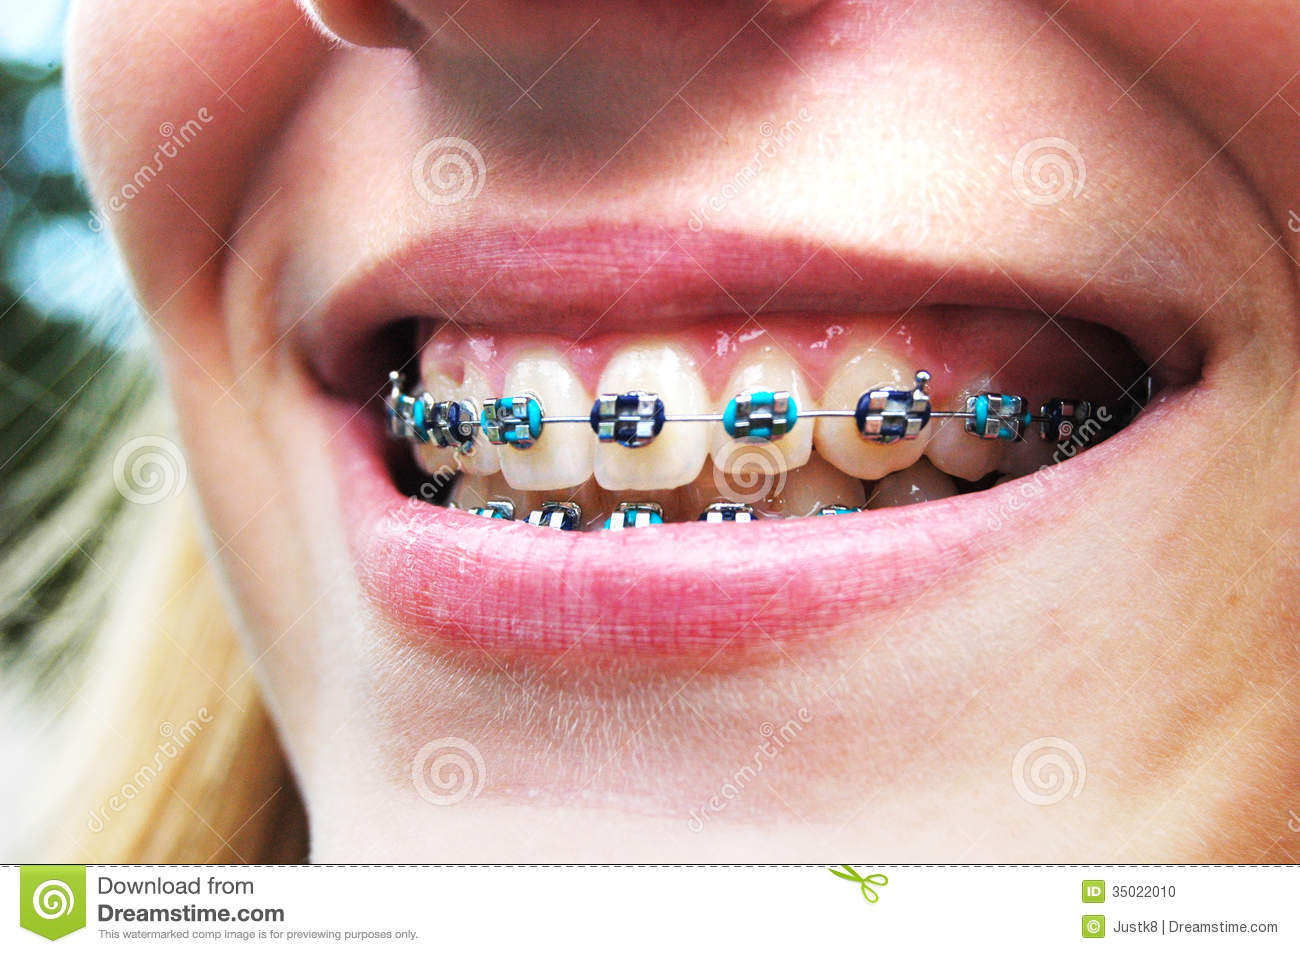 AFO - these braces jus...